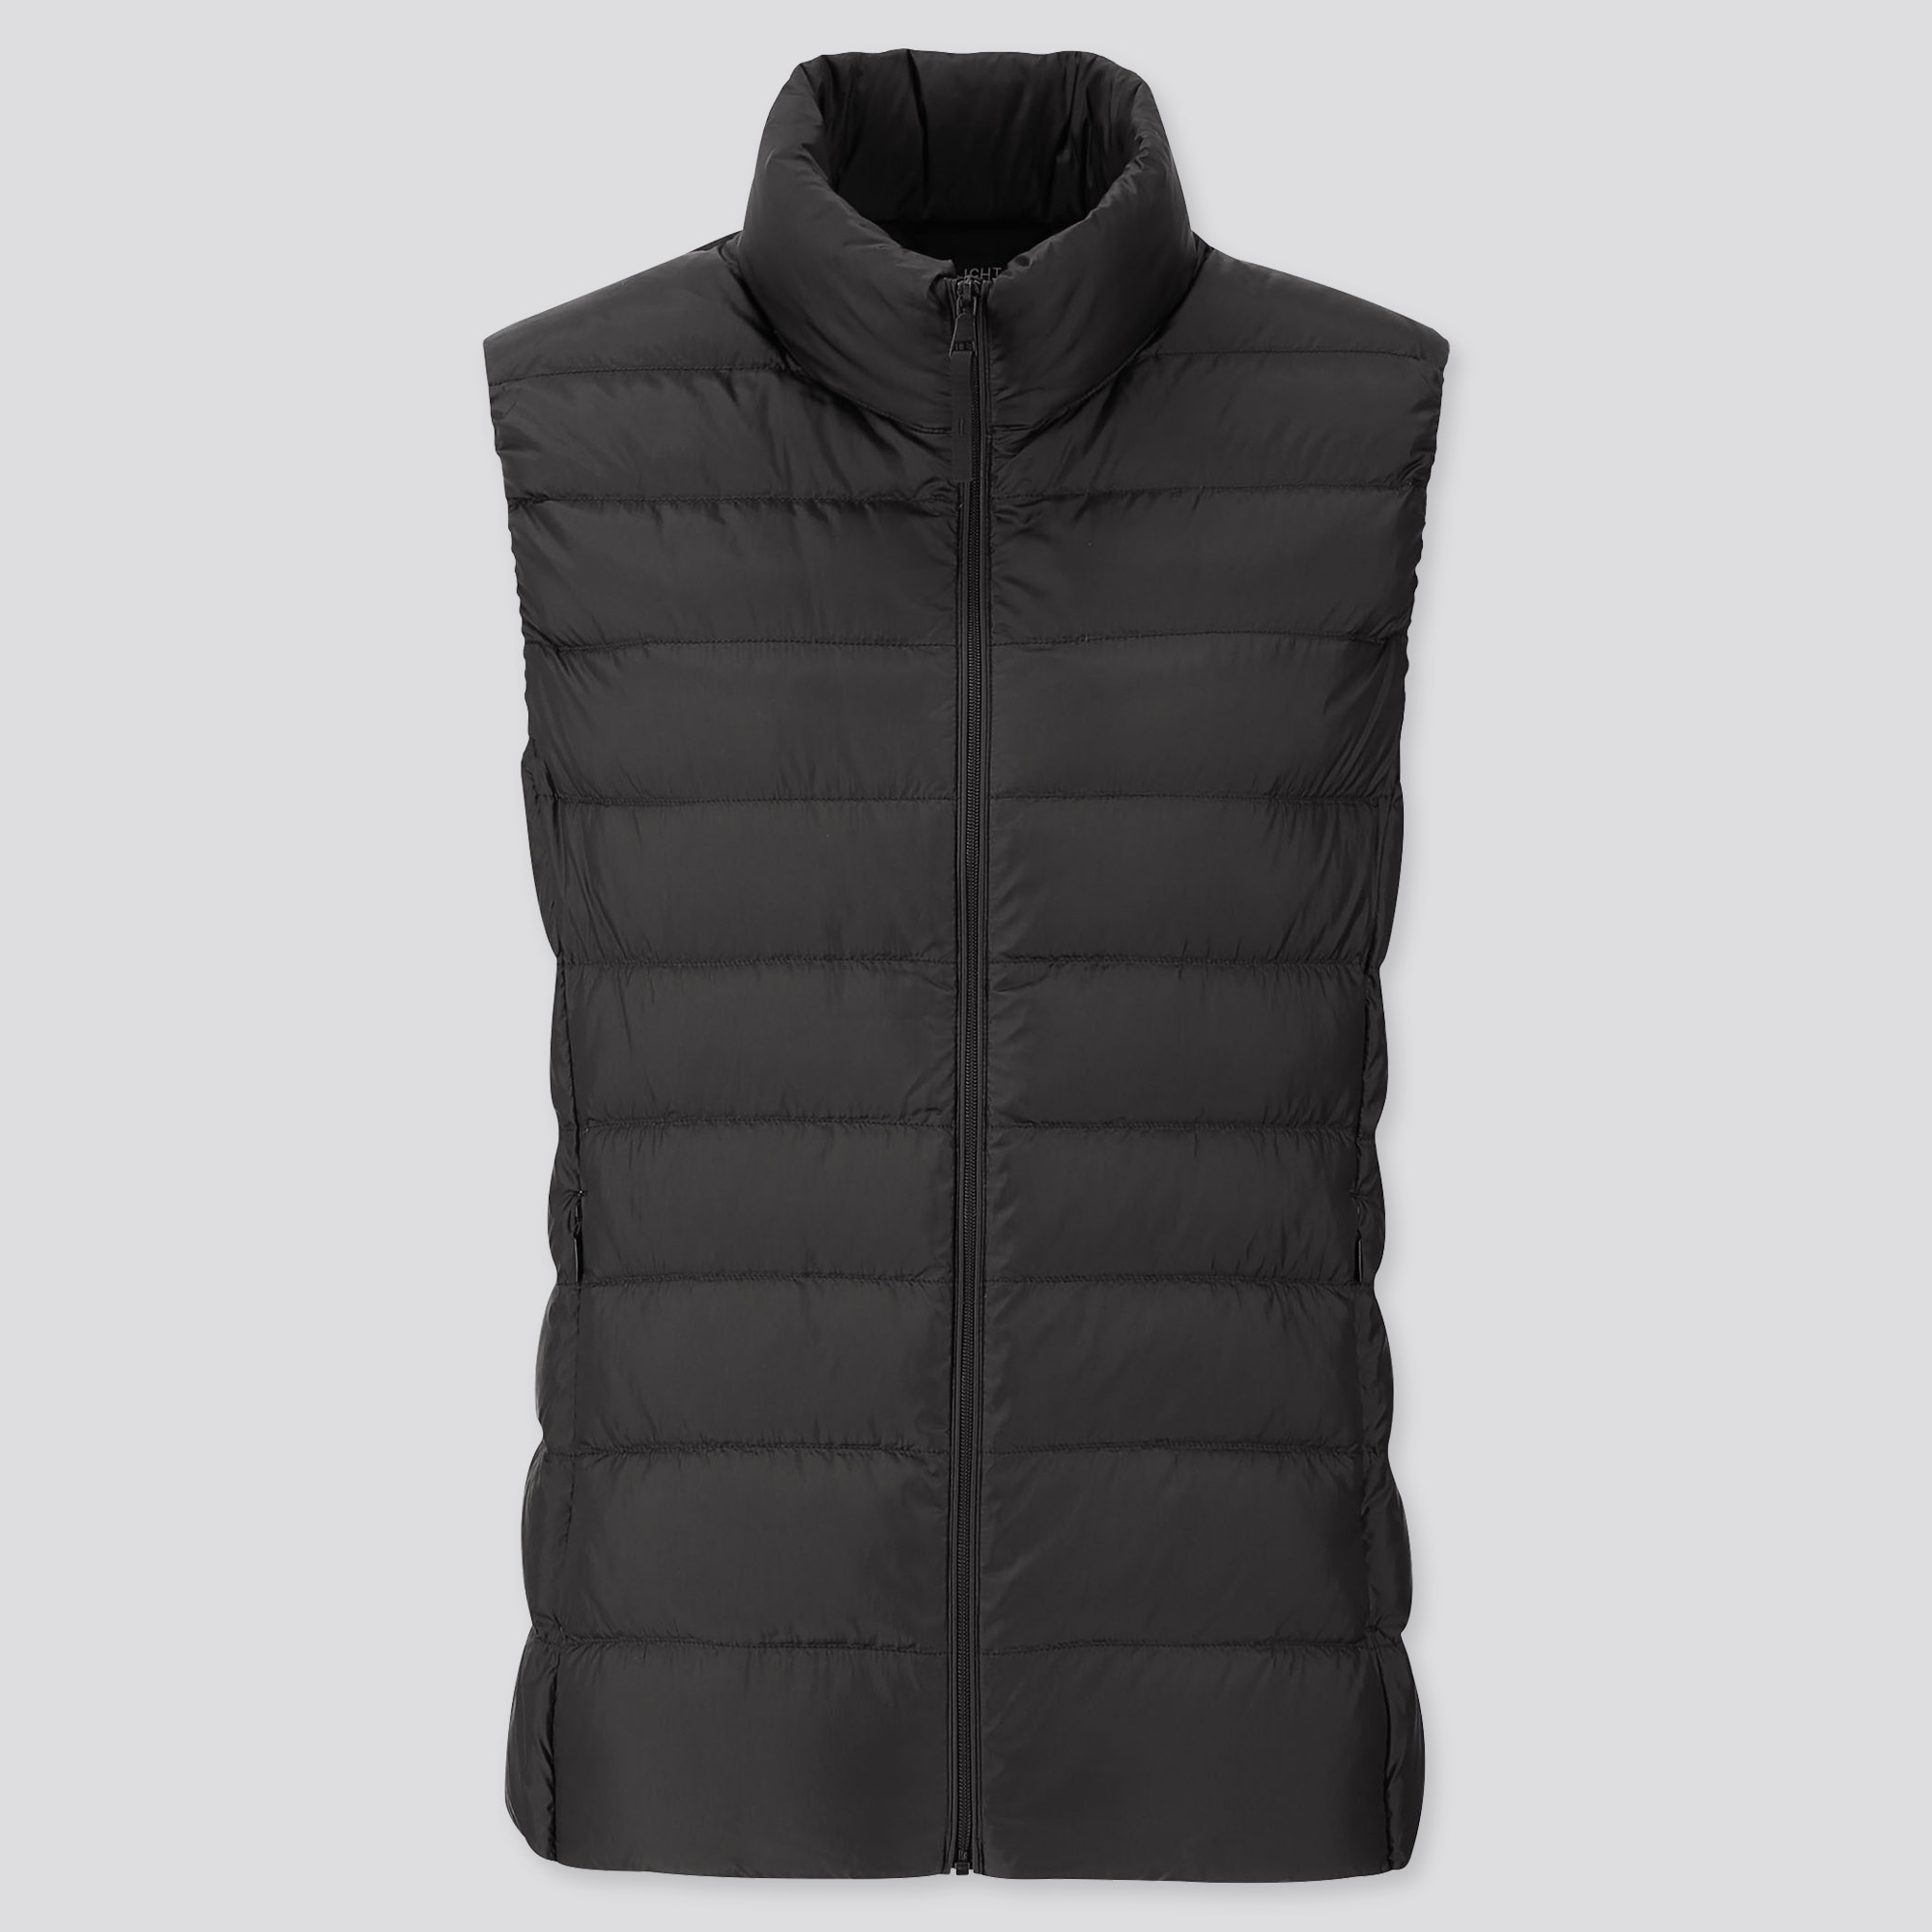 WOMEN ULTRA LIGHT DOWN VEST : Color - black, Size - xl (419775)